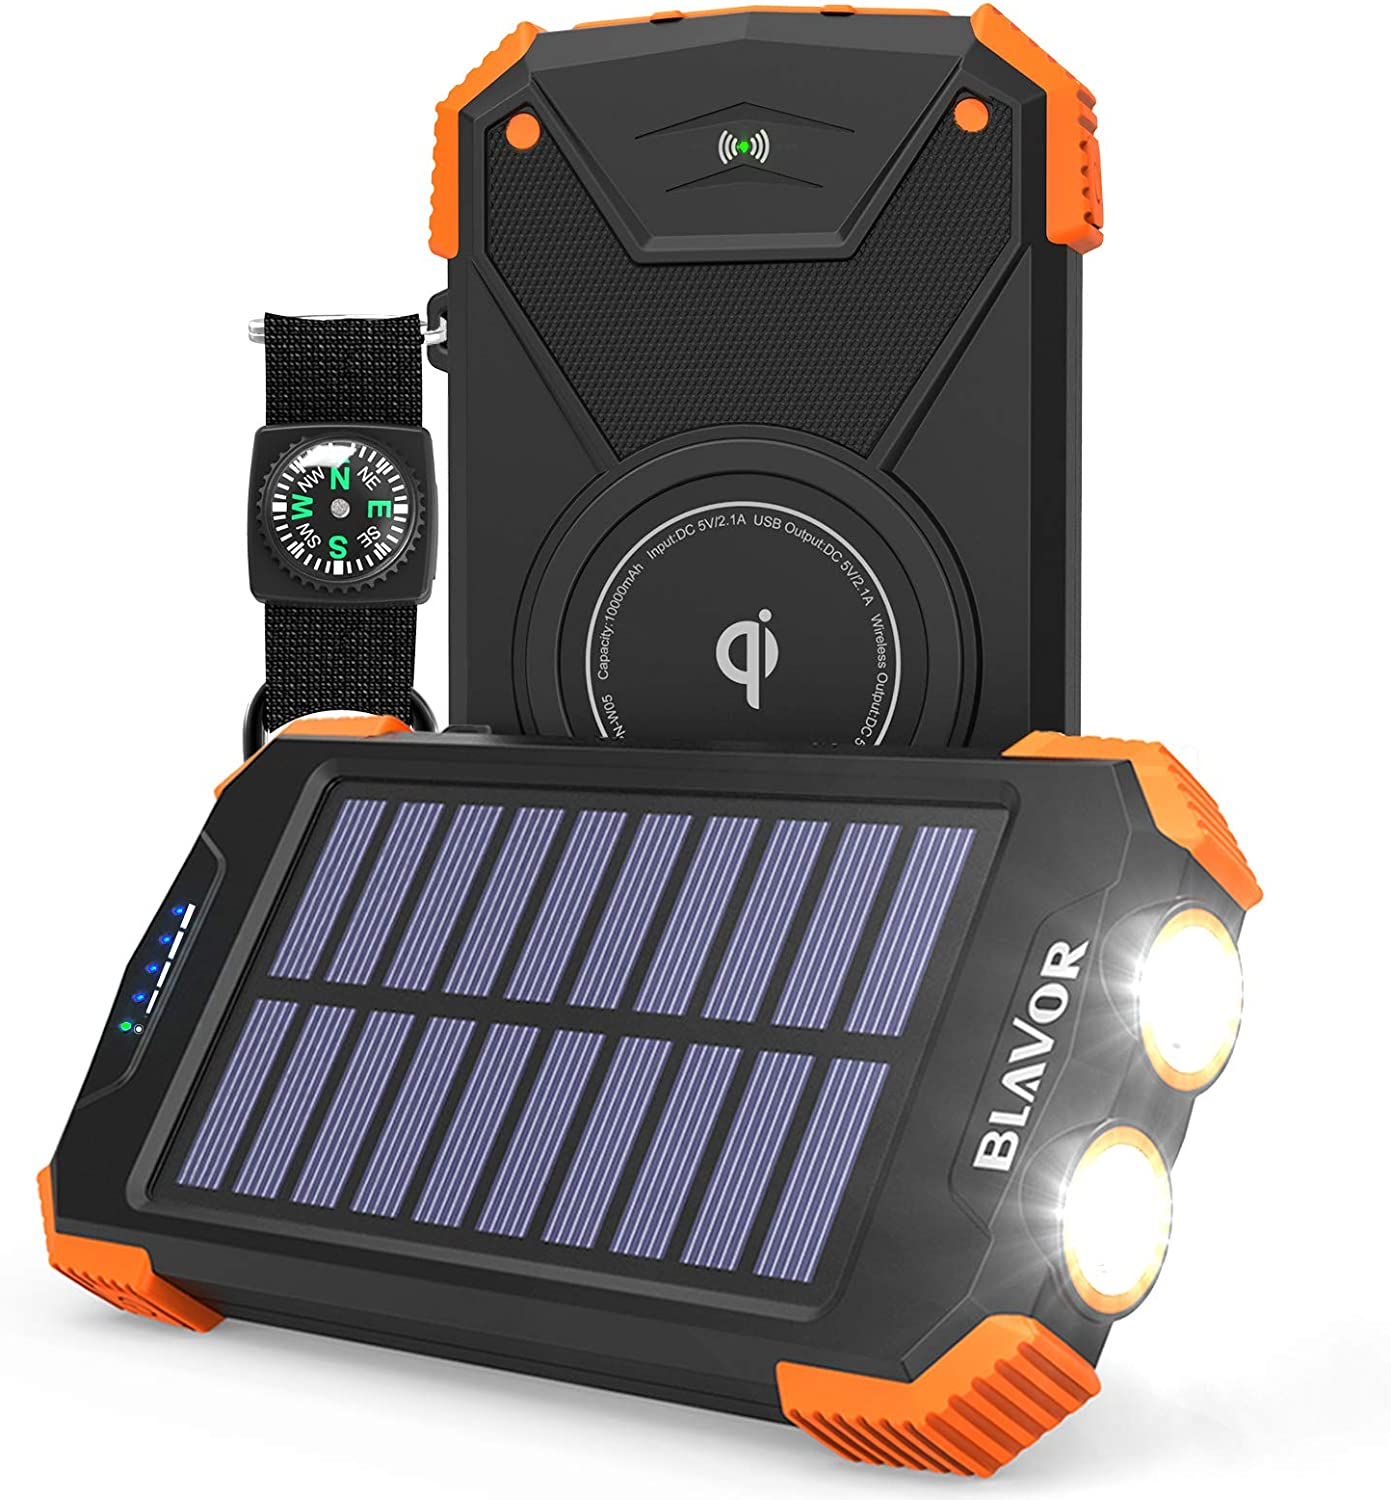 Solar Power Bank, Qi Portable Charger 10,000mAh External Battery Pack Type C Input Port Dual Flashlight